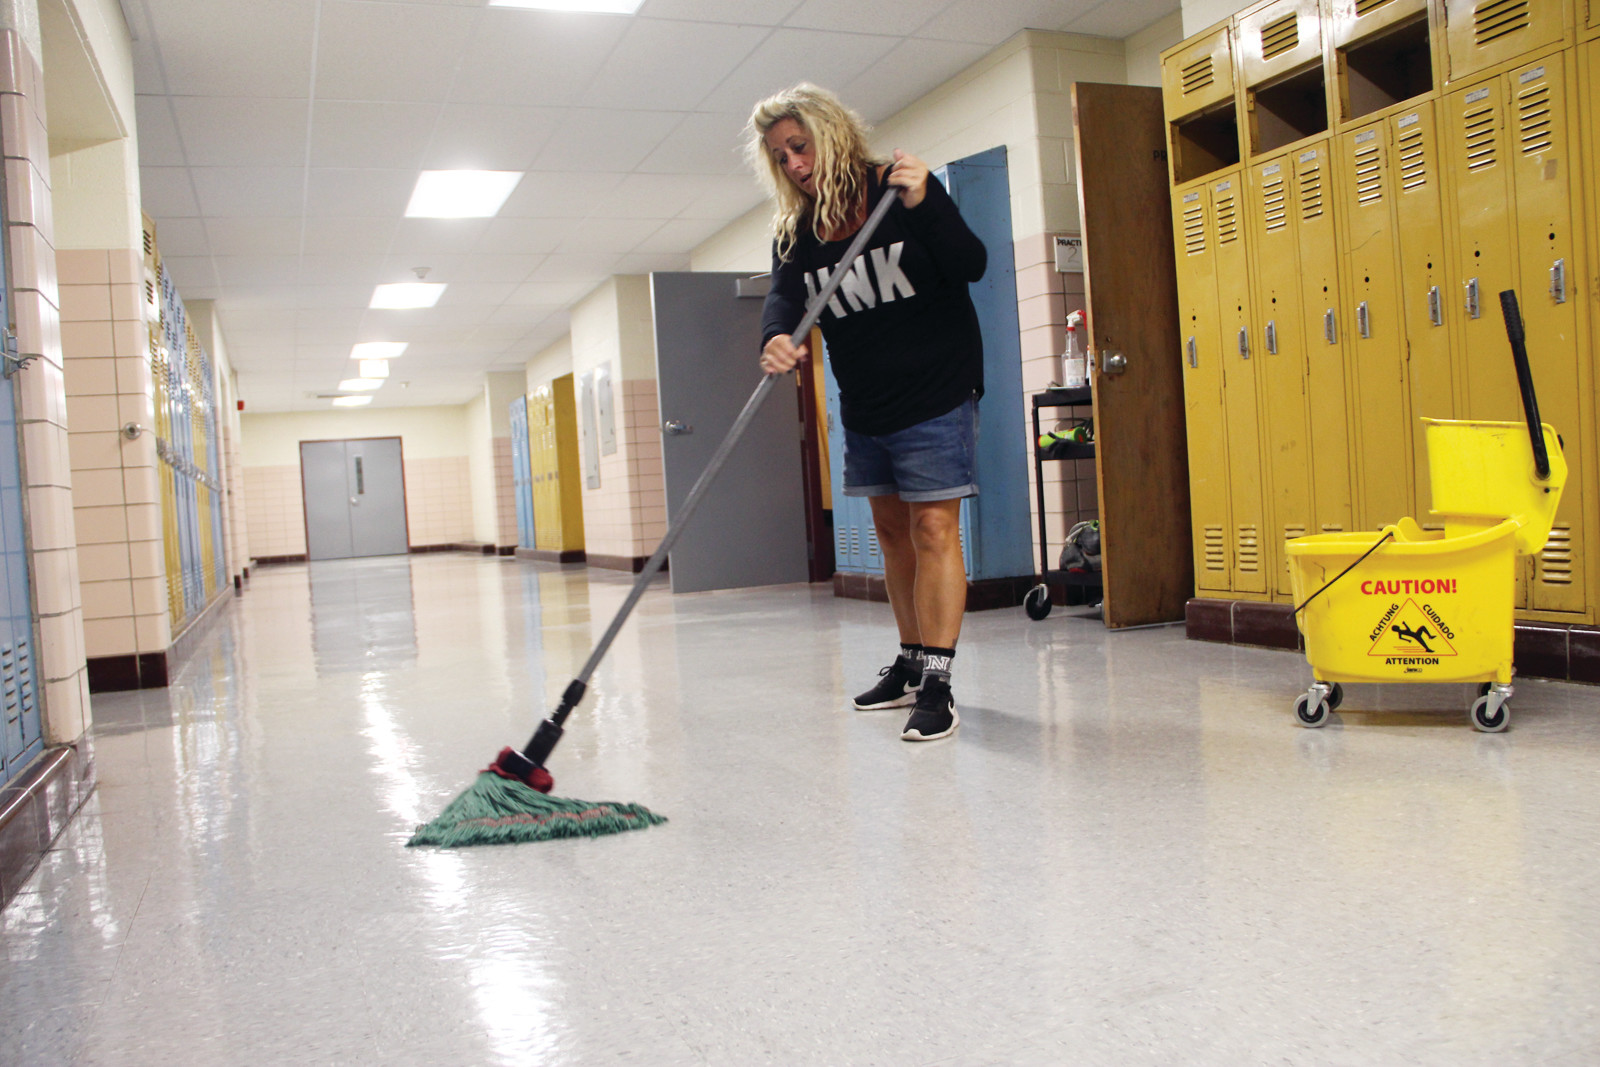 SHINING SCHOOLS: Denise Amirault puts the shine on the Vets' corridors. Ceiling tiles and lights have been replaced at the school.